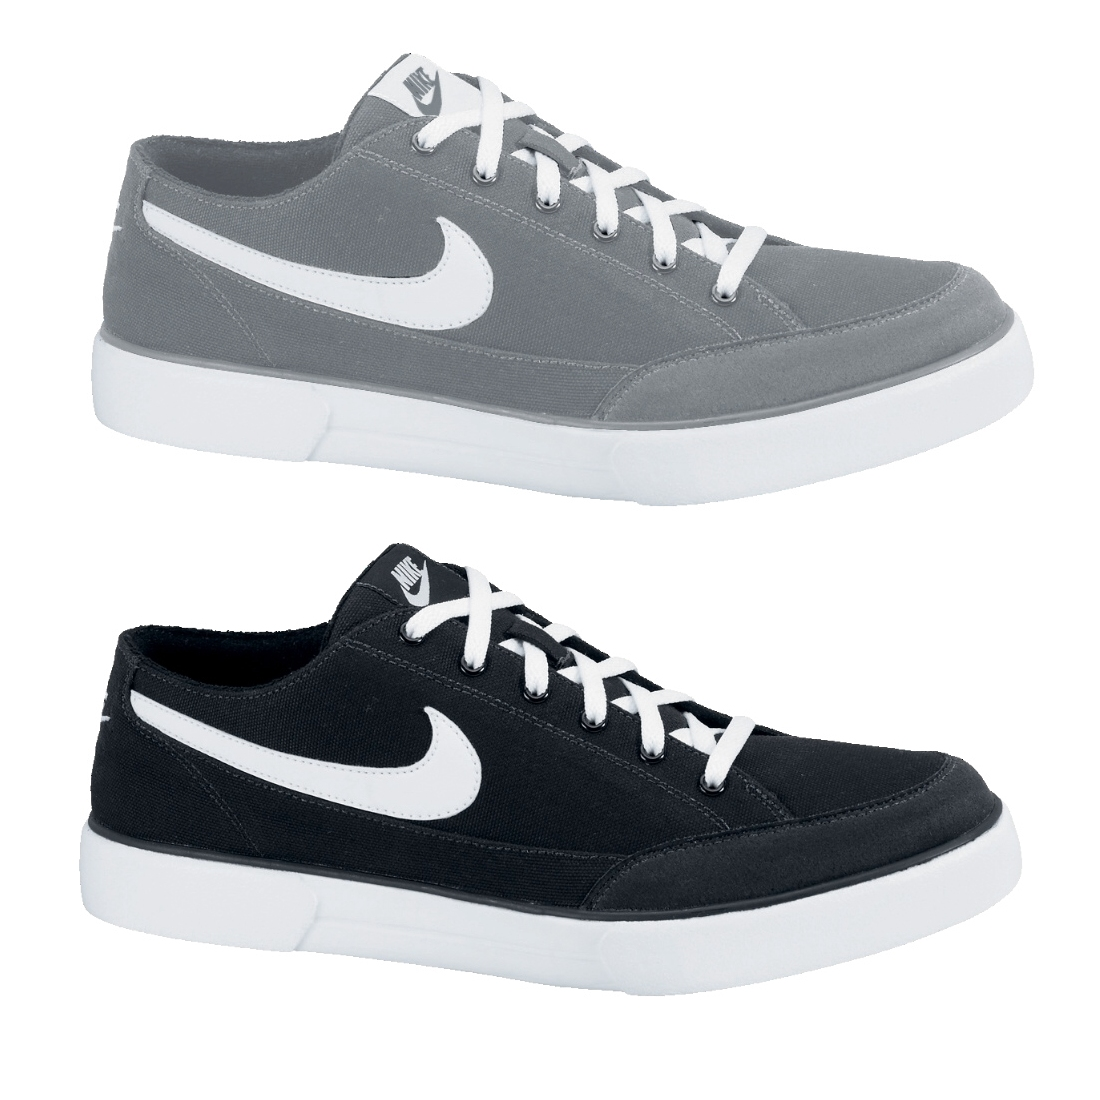 nike gts 12 canvas schuhe sneaker turnschuhe herren damen. Black Bedroom Furniture Sets. Home Design Ideas